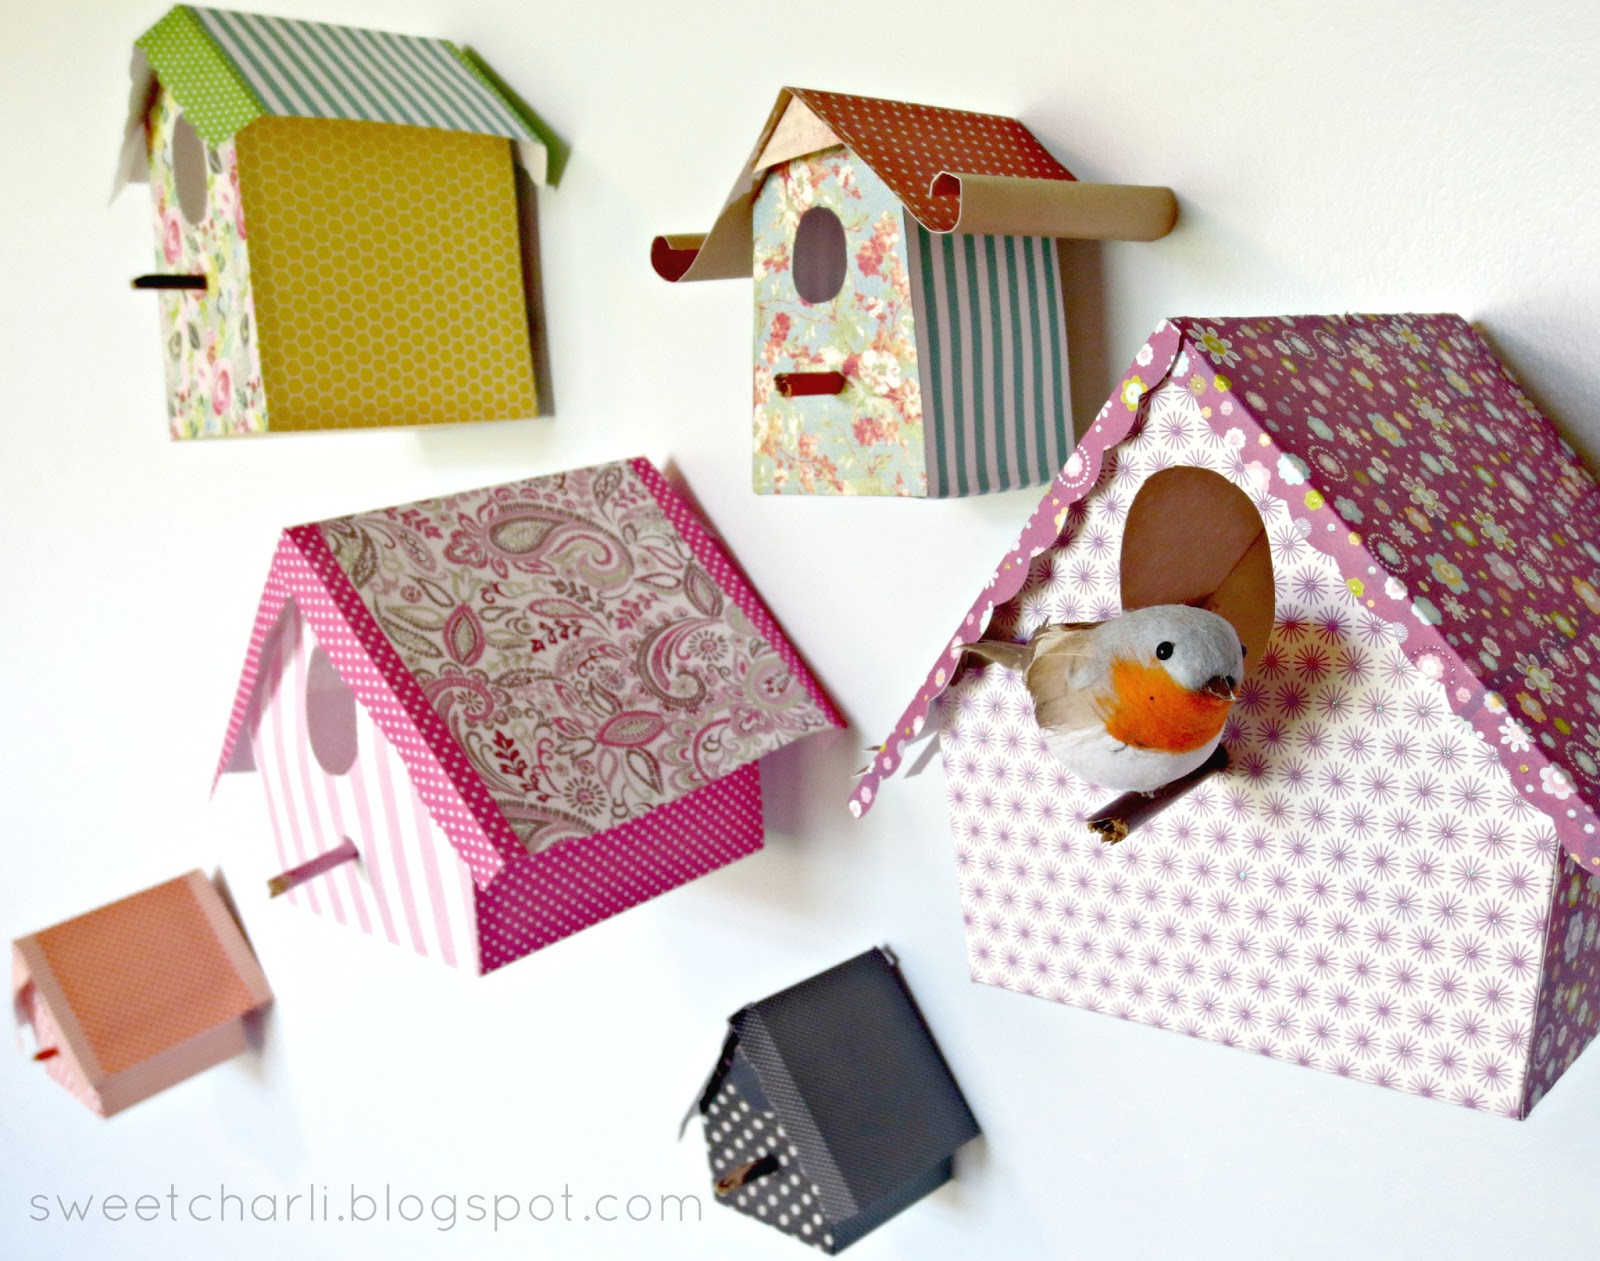 How to make a bird house - Paper Bird Houses Whimsical